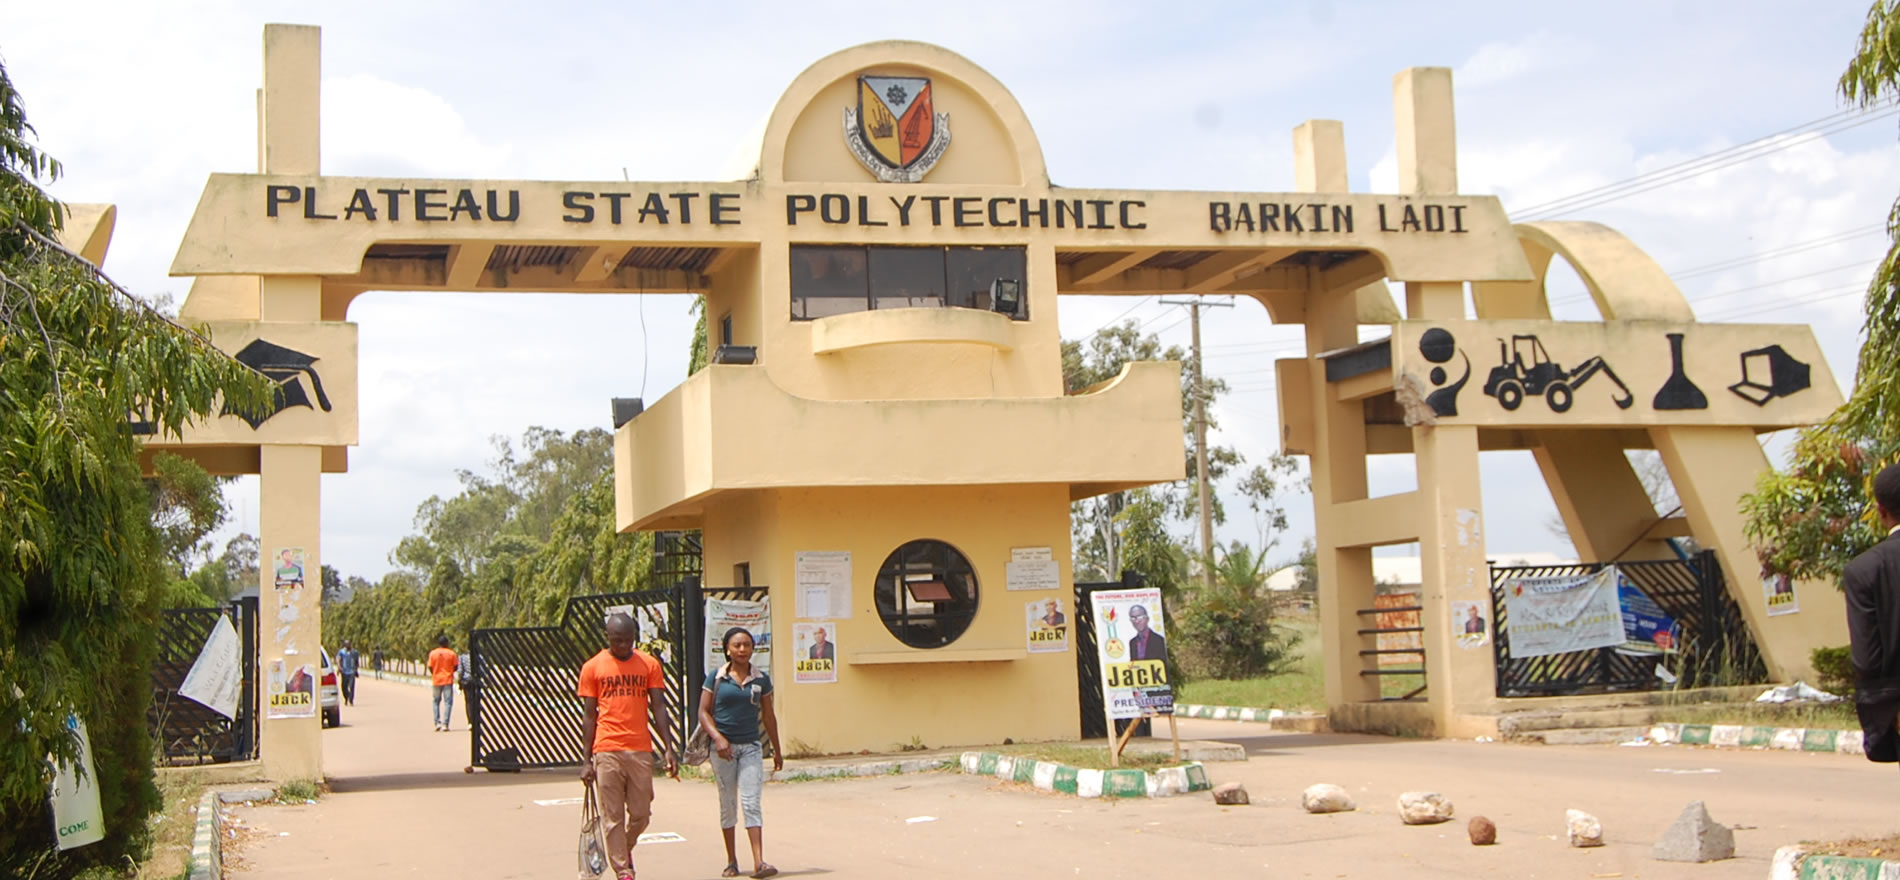 Plateau State Polytechnic Barkin Ladi - Post-UTME 2017: PLAPOLY Screening, Cut-off Marks And Registration Details